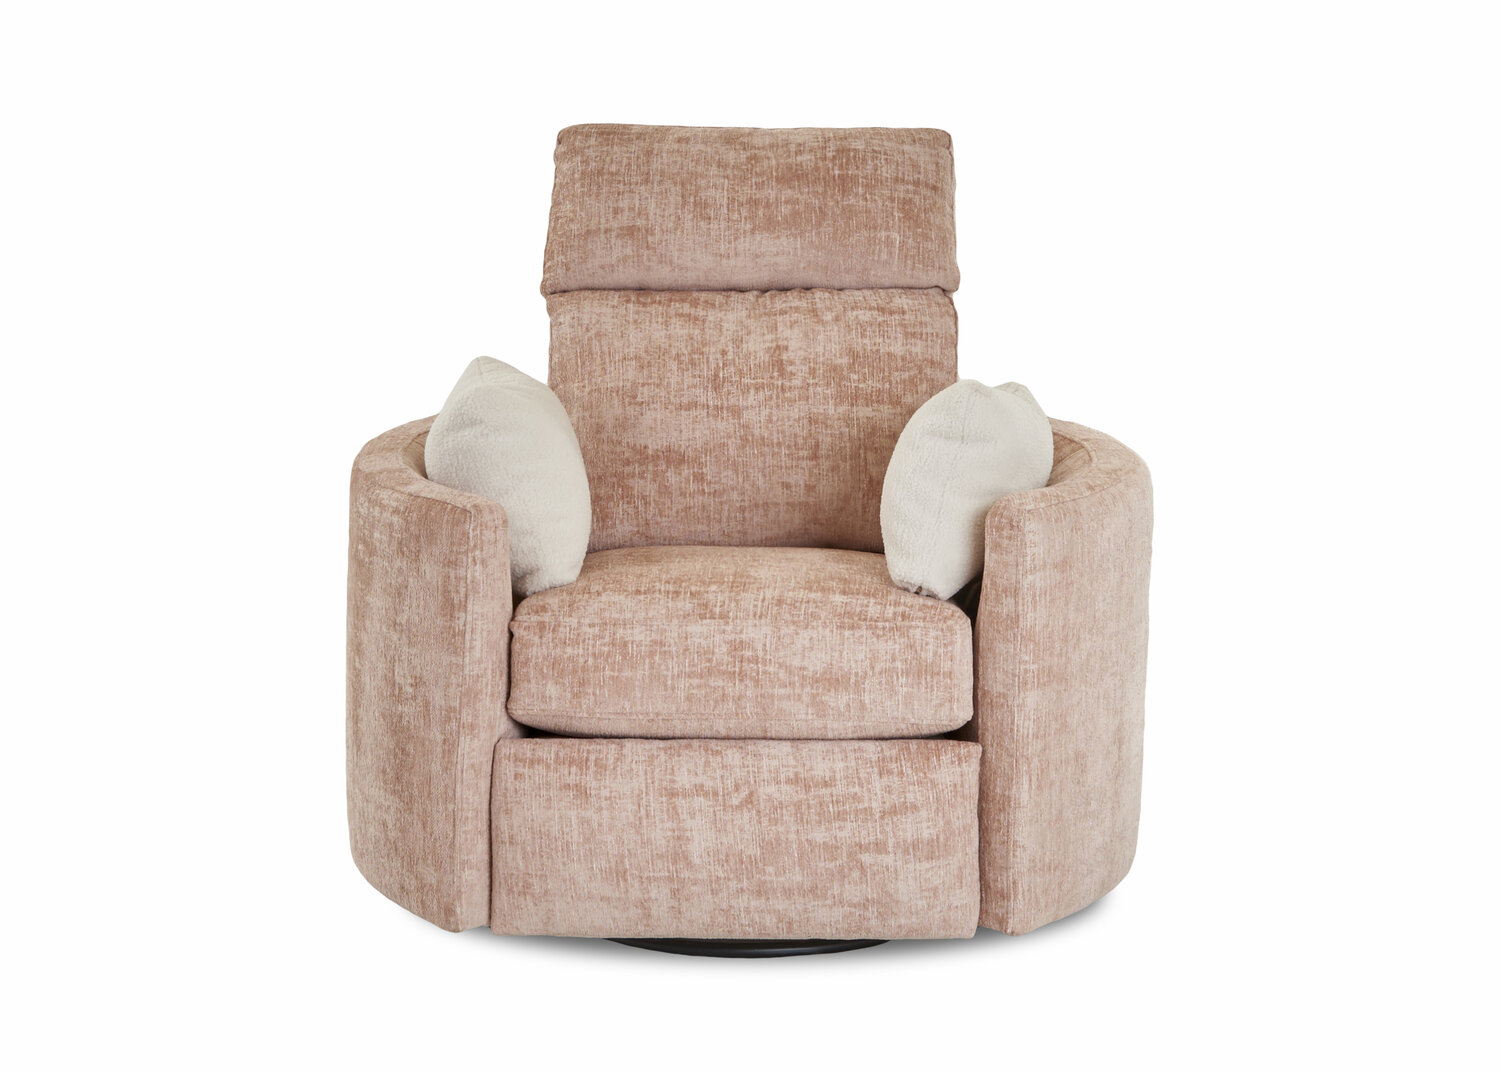 Customizable Cosmo Reclining Chair, Club Chair Recliner Swivel